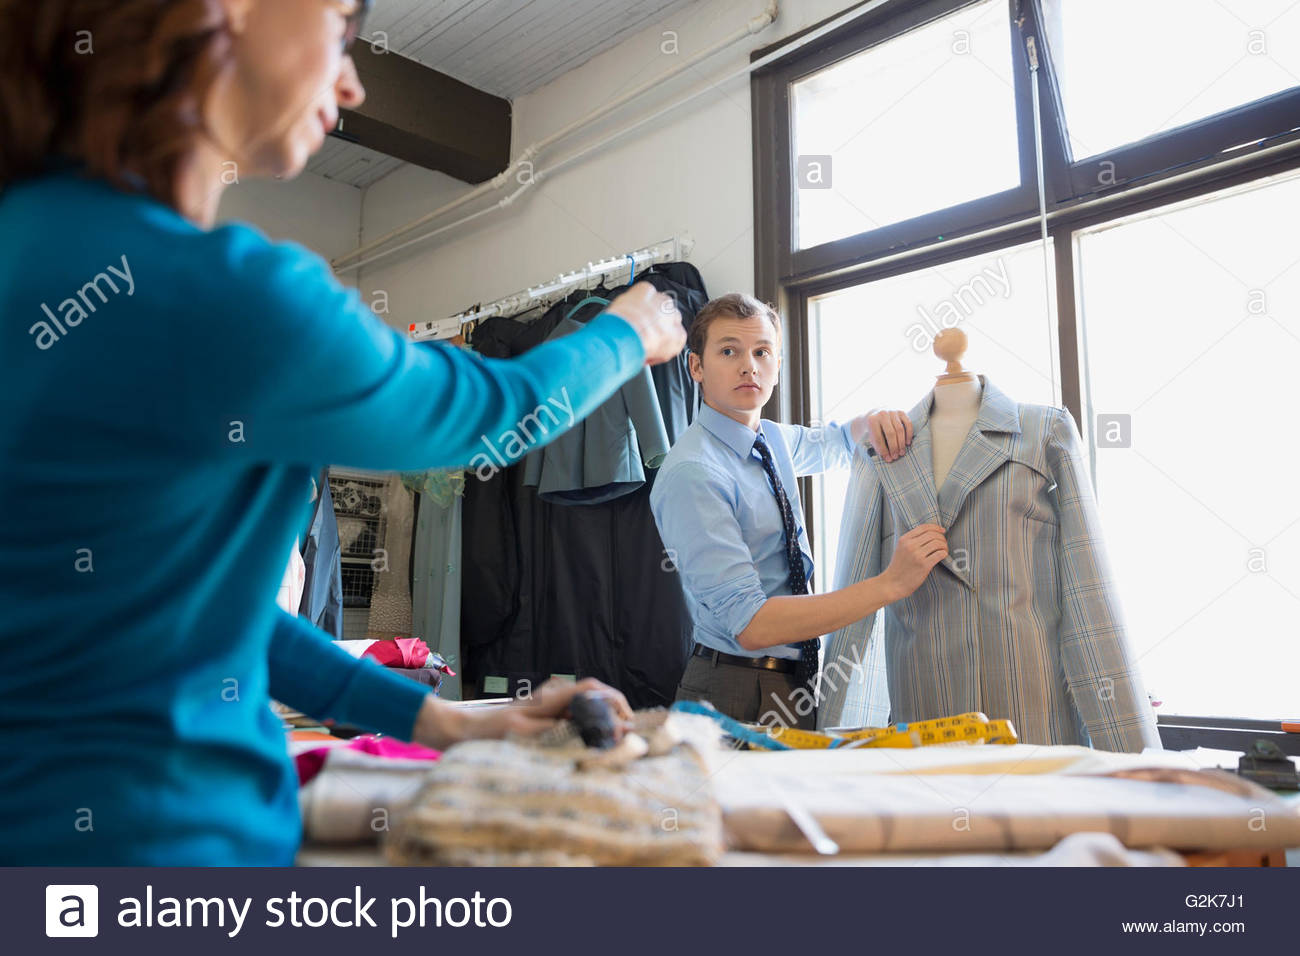 Dressmakers discussing suit on dressmakers model - Stock Image